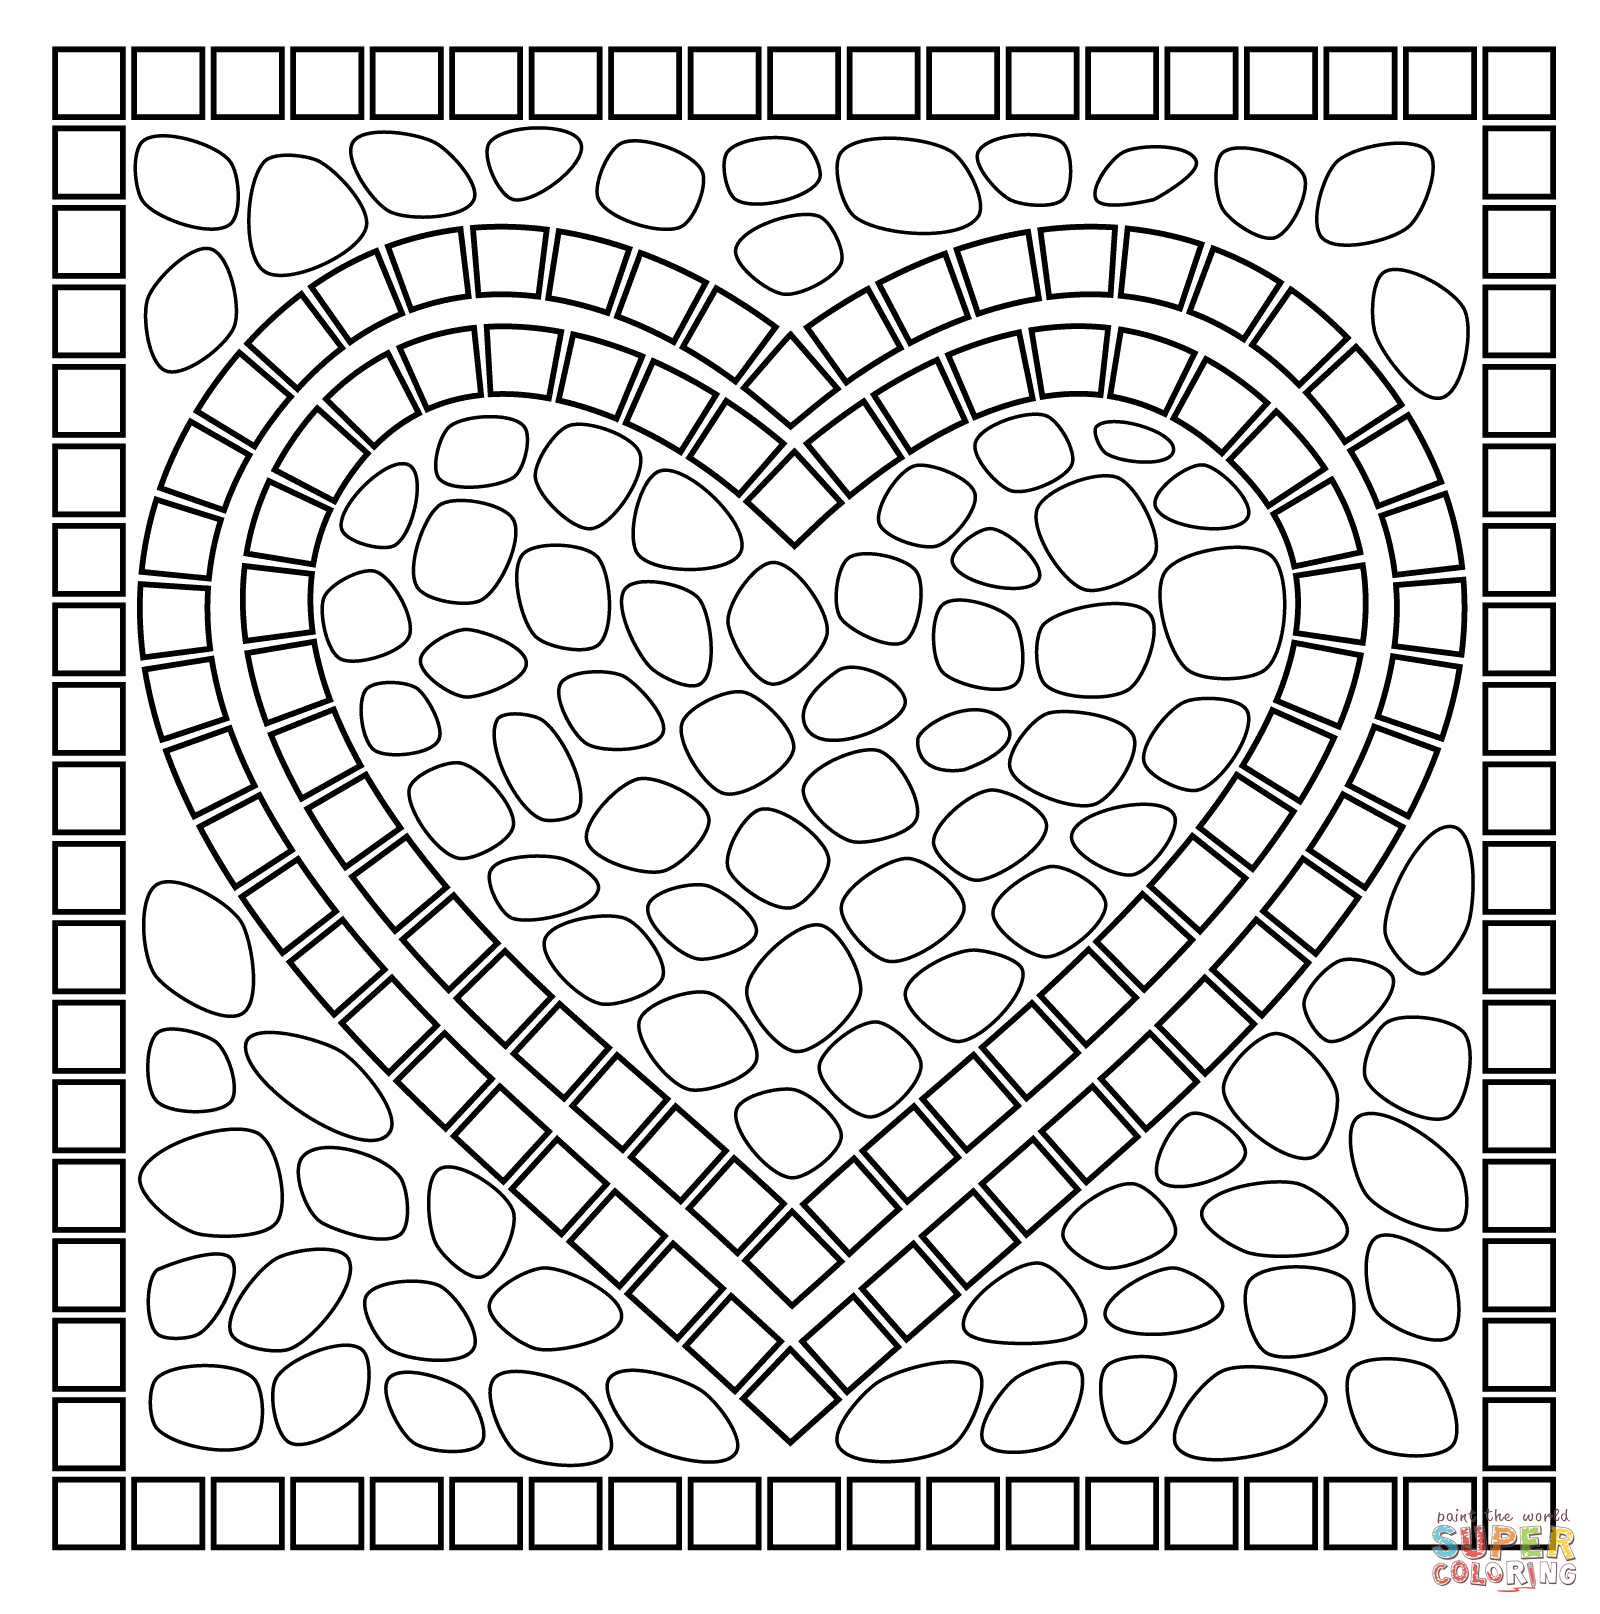 animal mosaic coloring pages mosaic coloring pages to download and print for free mosaic animal coloring pages